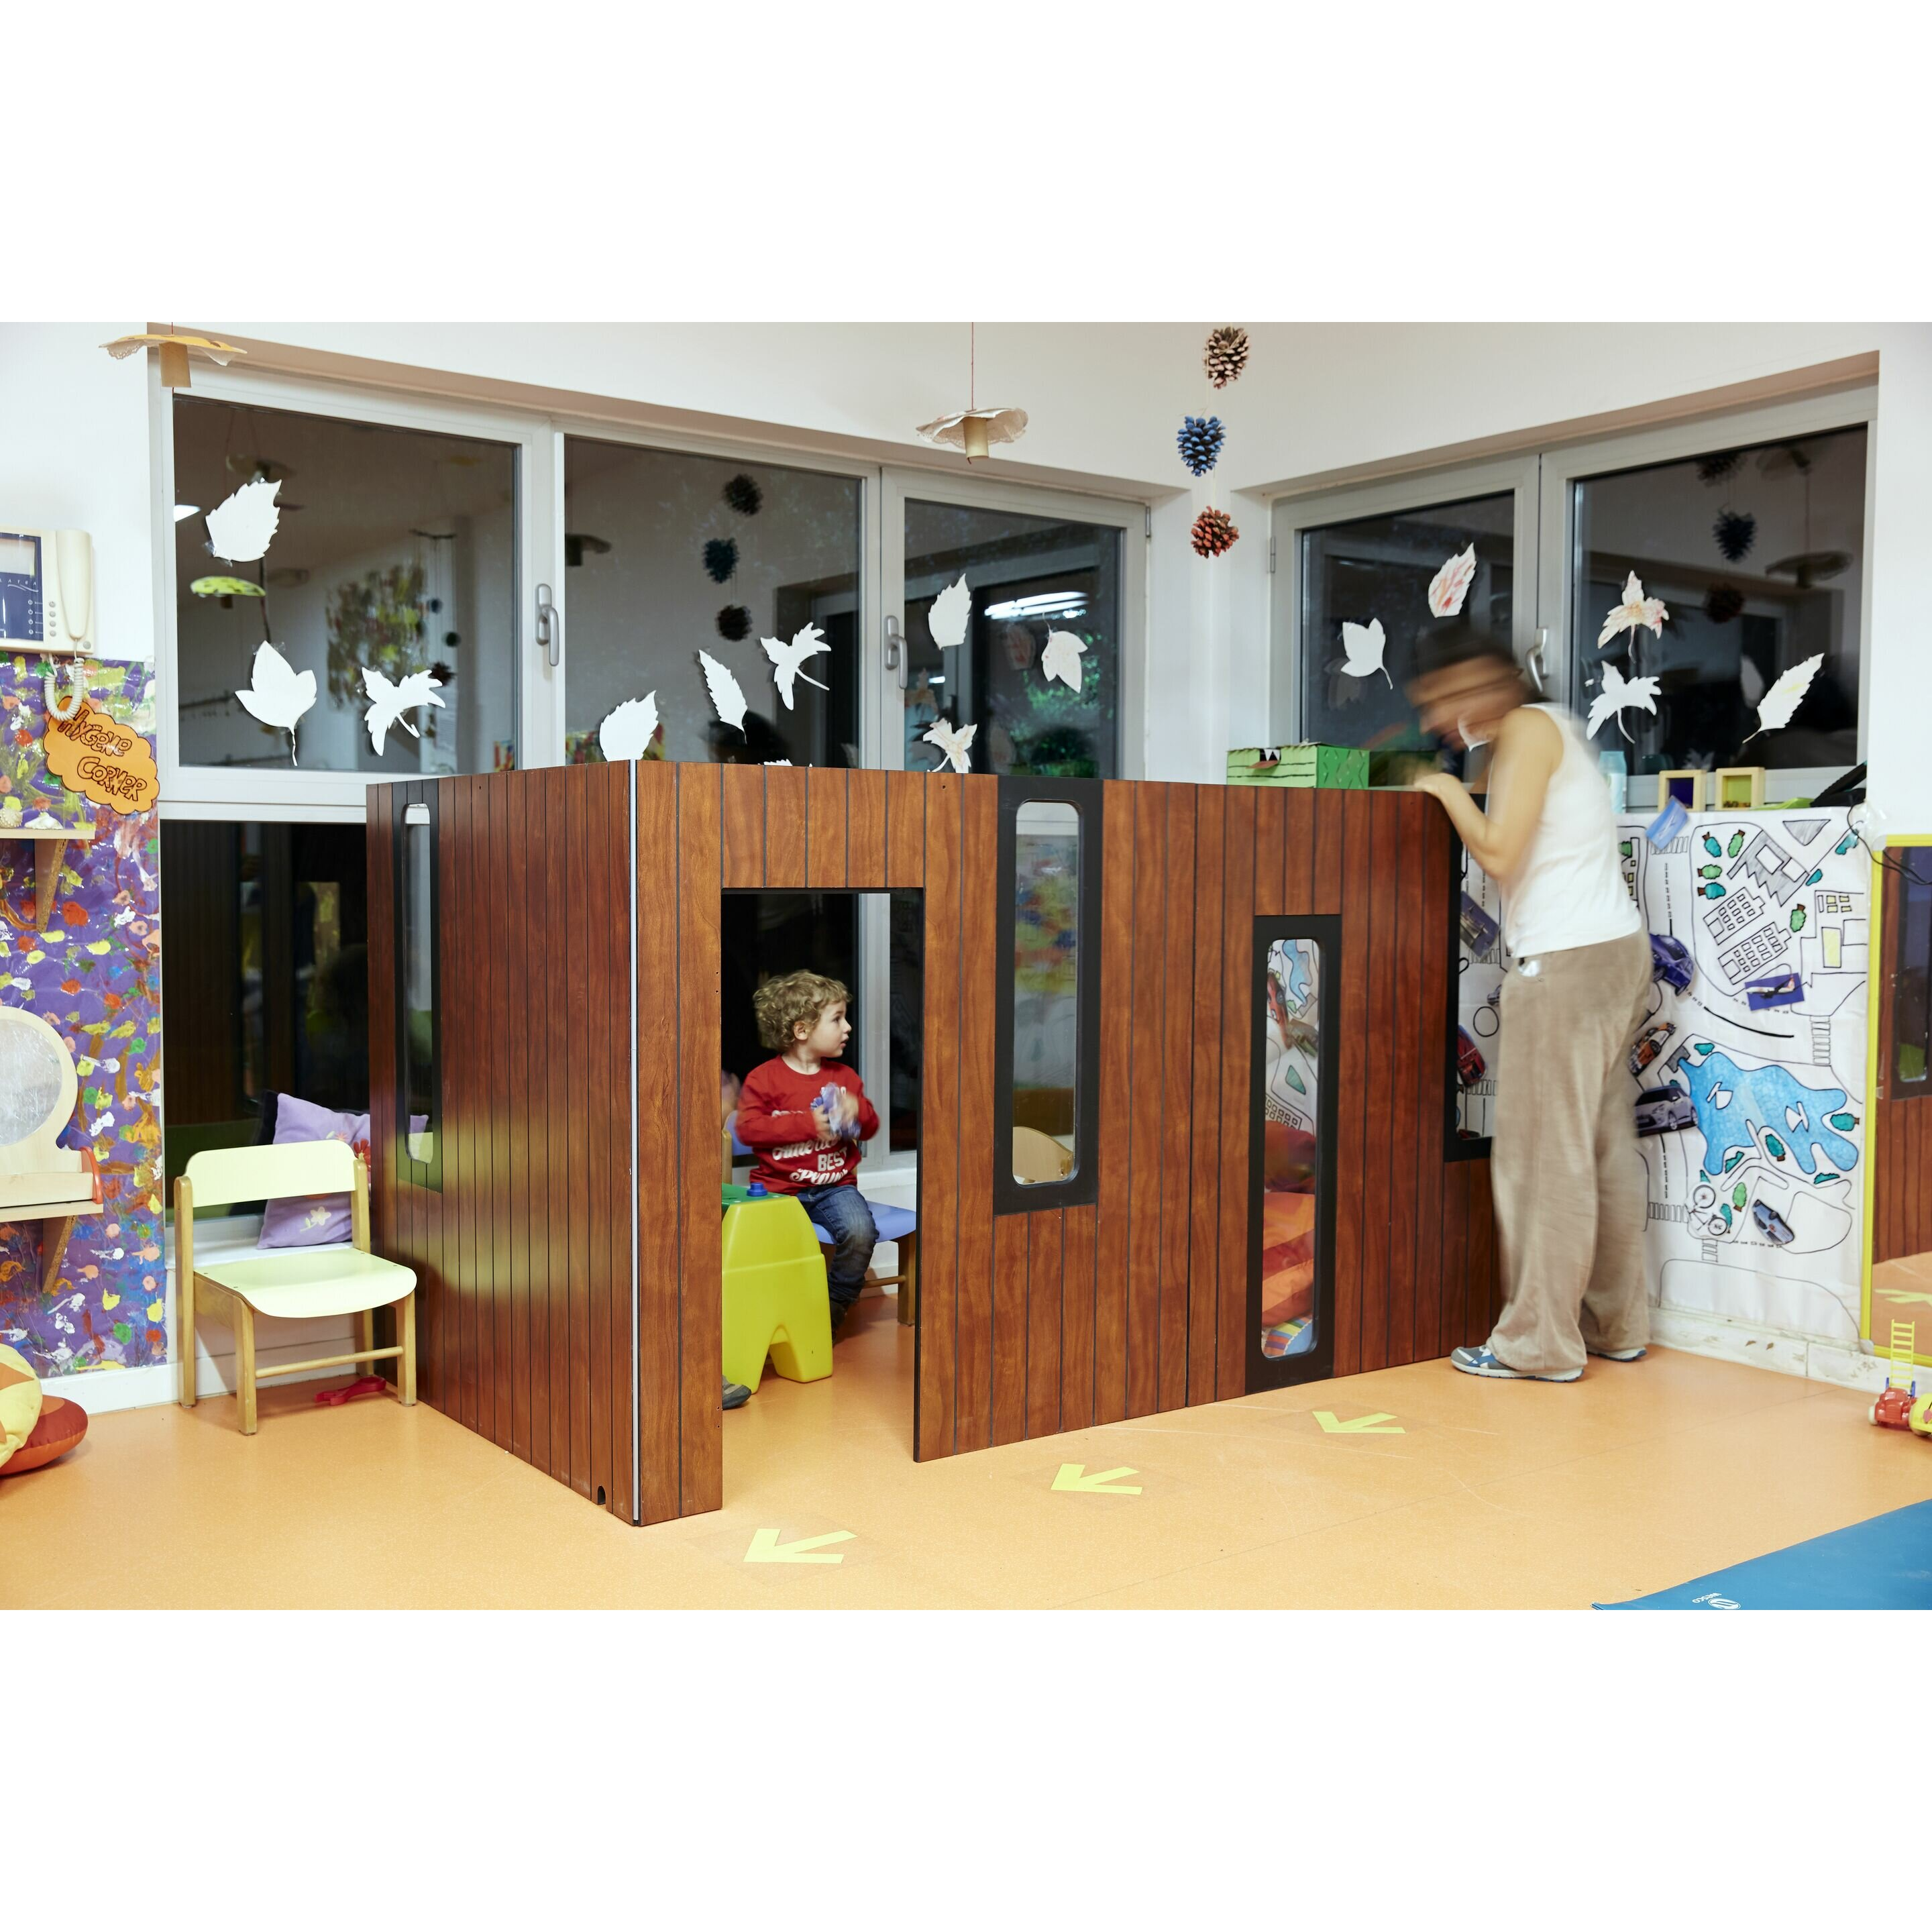 hobikken indoor corner playhouse wayfair uk